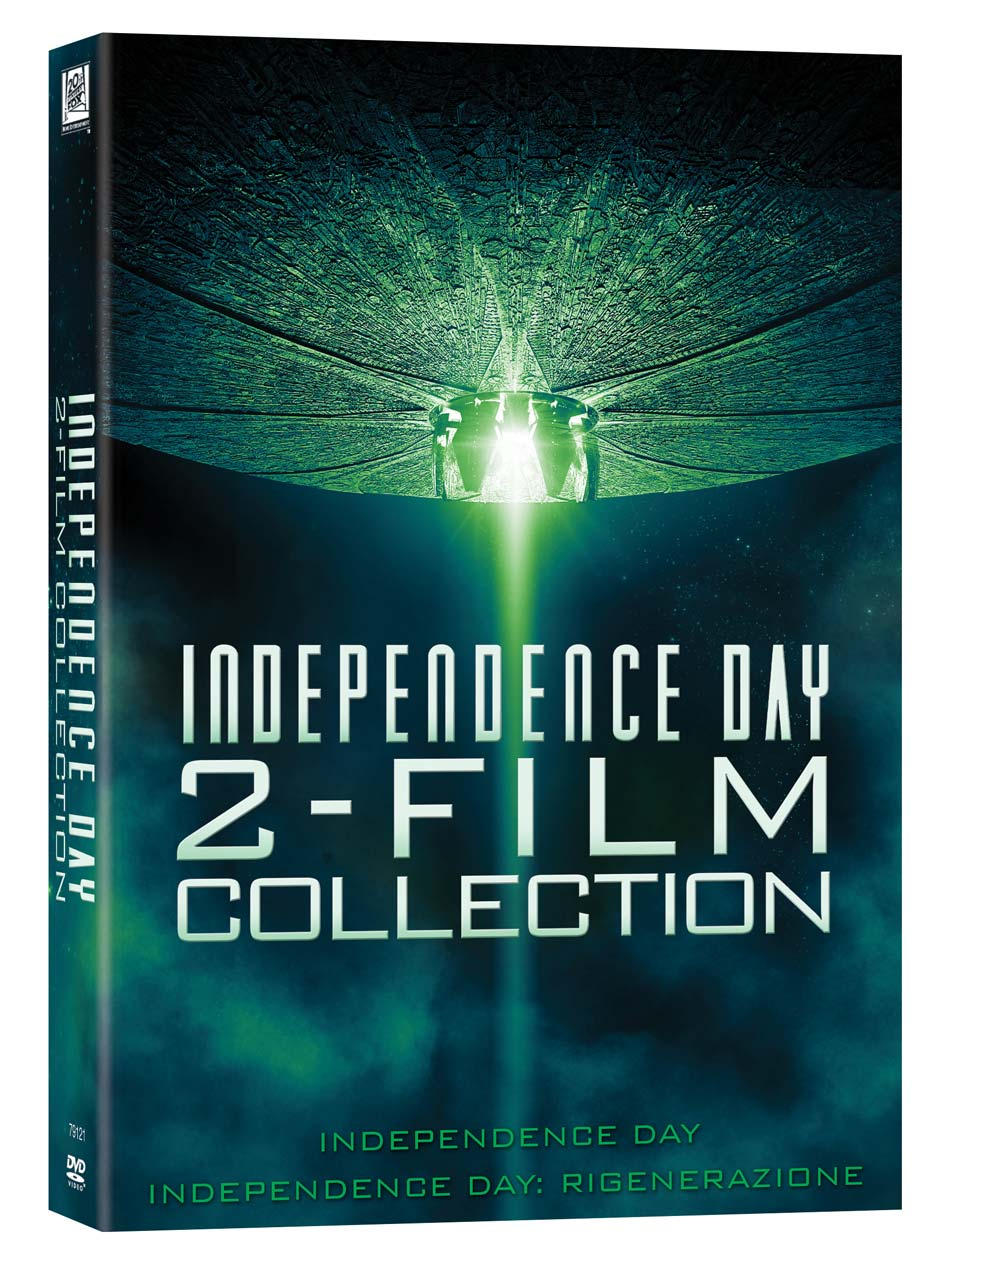 COF.INDEPENDENCE DAY (1996) / INDEPENDENCE DAY - RIGENERAZIONE (